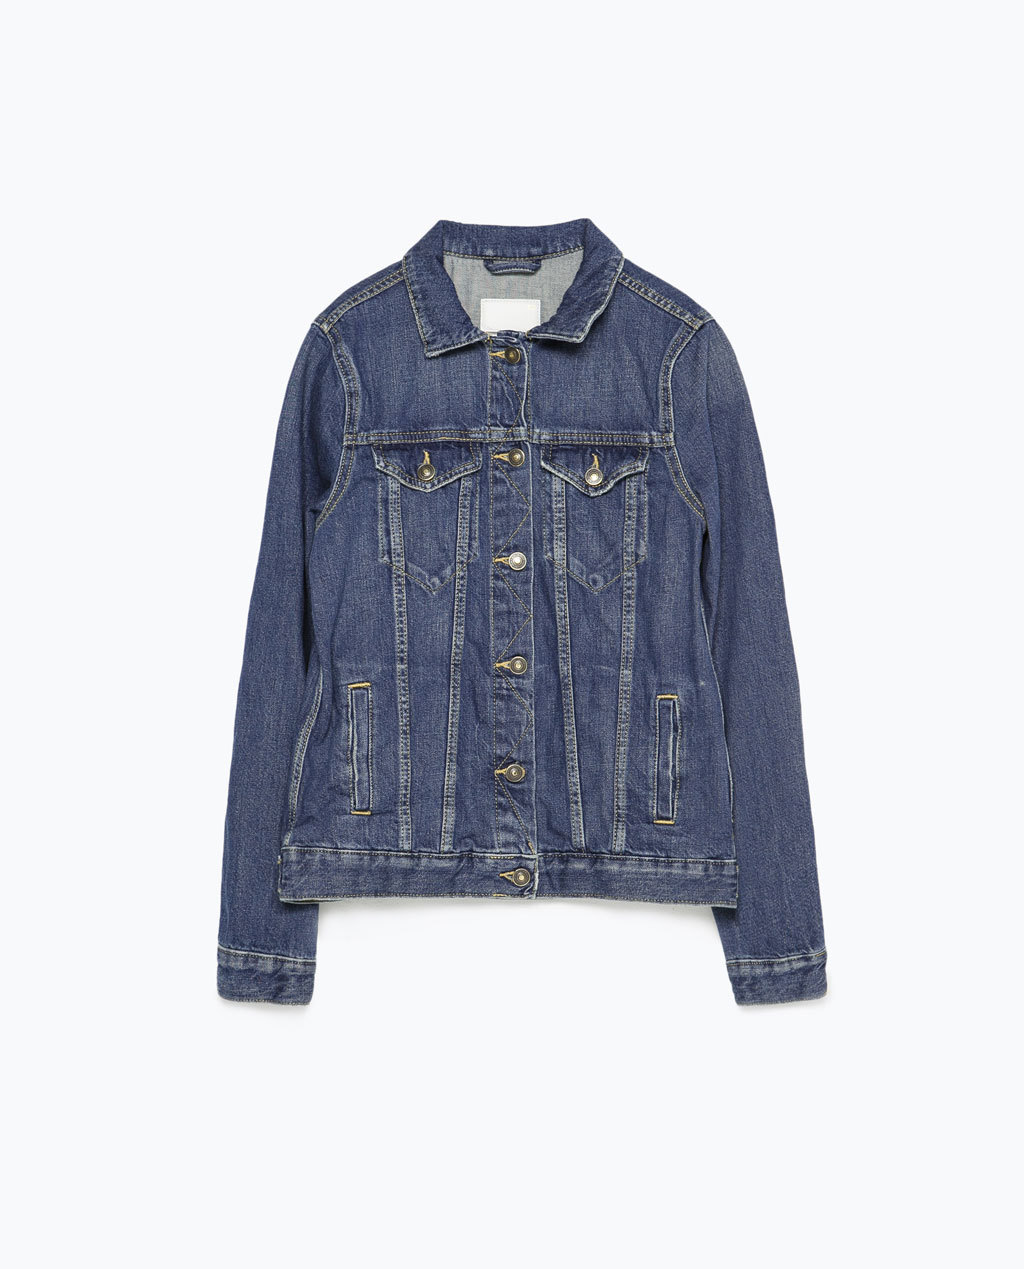 Denim Jacket - pattern: plain; style: denim; predominant colour: denim; occasions: casual, creative work; length: standard; fit: straight cut (boxy); fibres: cotton - stretch; collar: shirt collar/peter pan/zip with opening; sleeve length: long sleeve; sleeve style: standard; texture group: denim; collar break: high/illusion of break when open; pattern type: fabric; season: s/s 2015